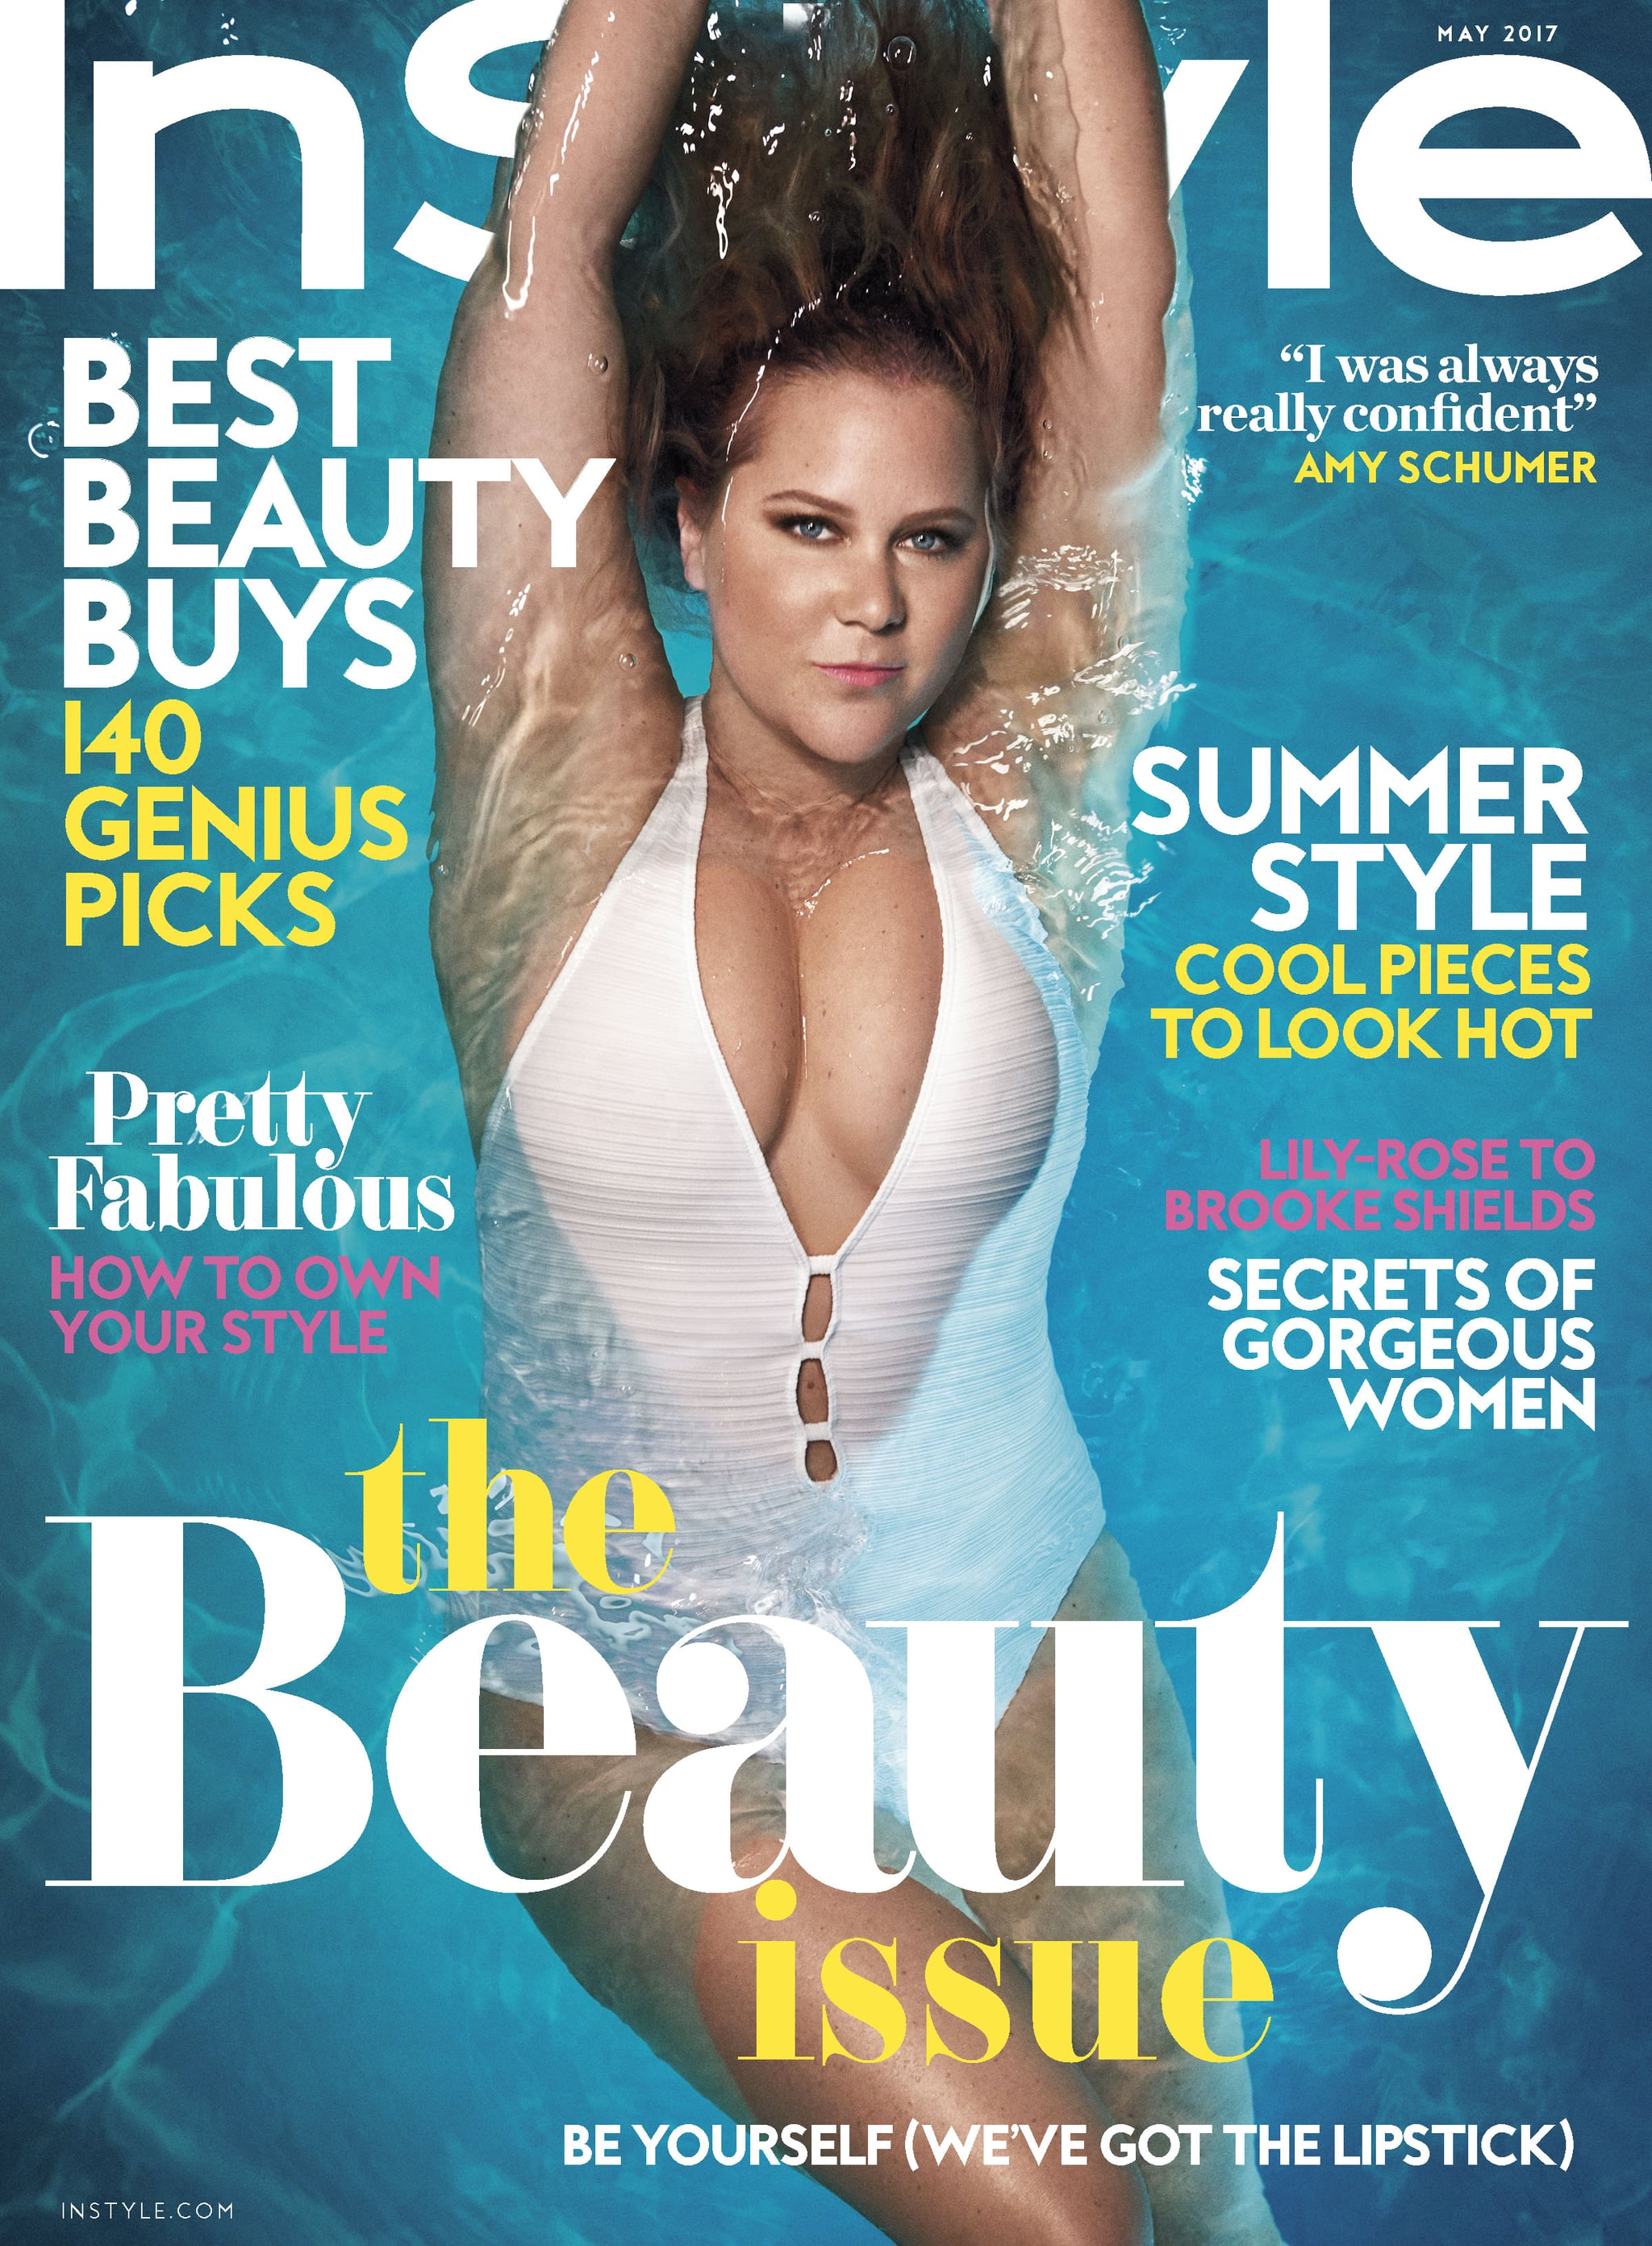 Amy Schumer Instyle May 2017 Cover Popsugar Celebrity